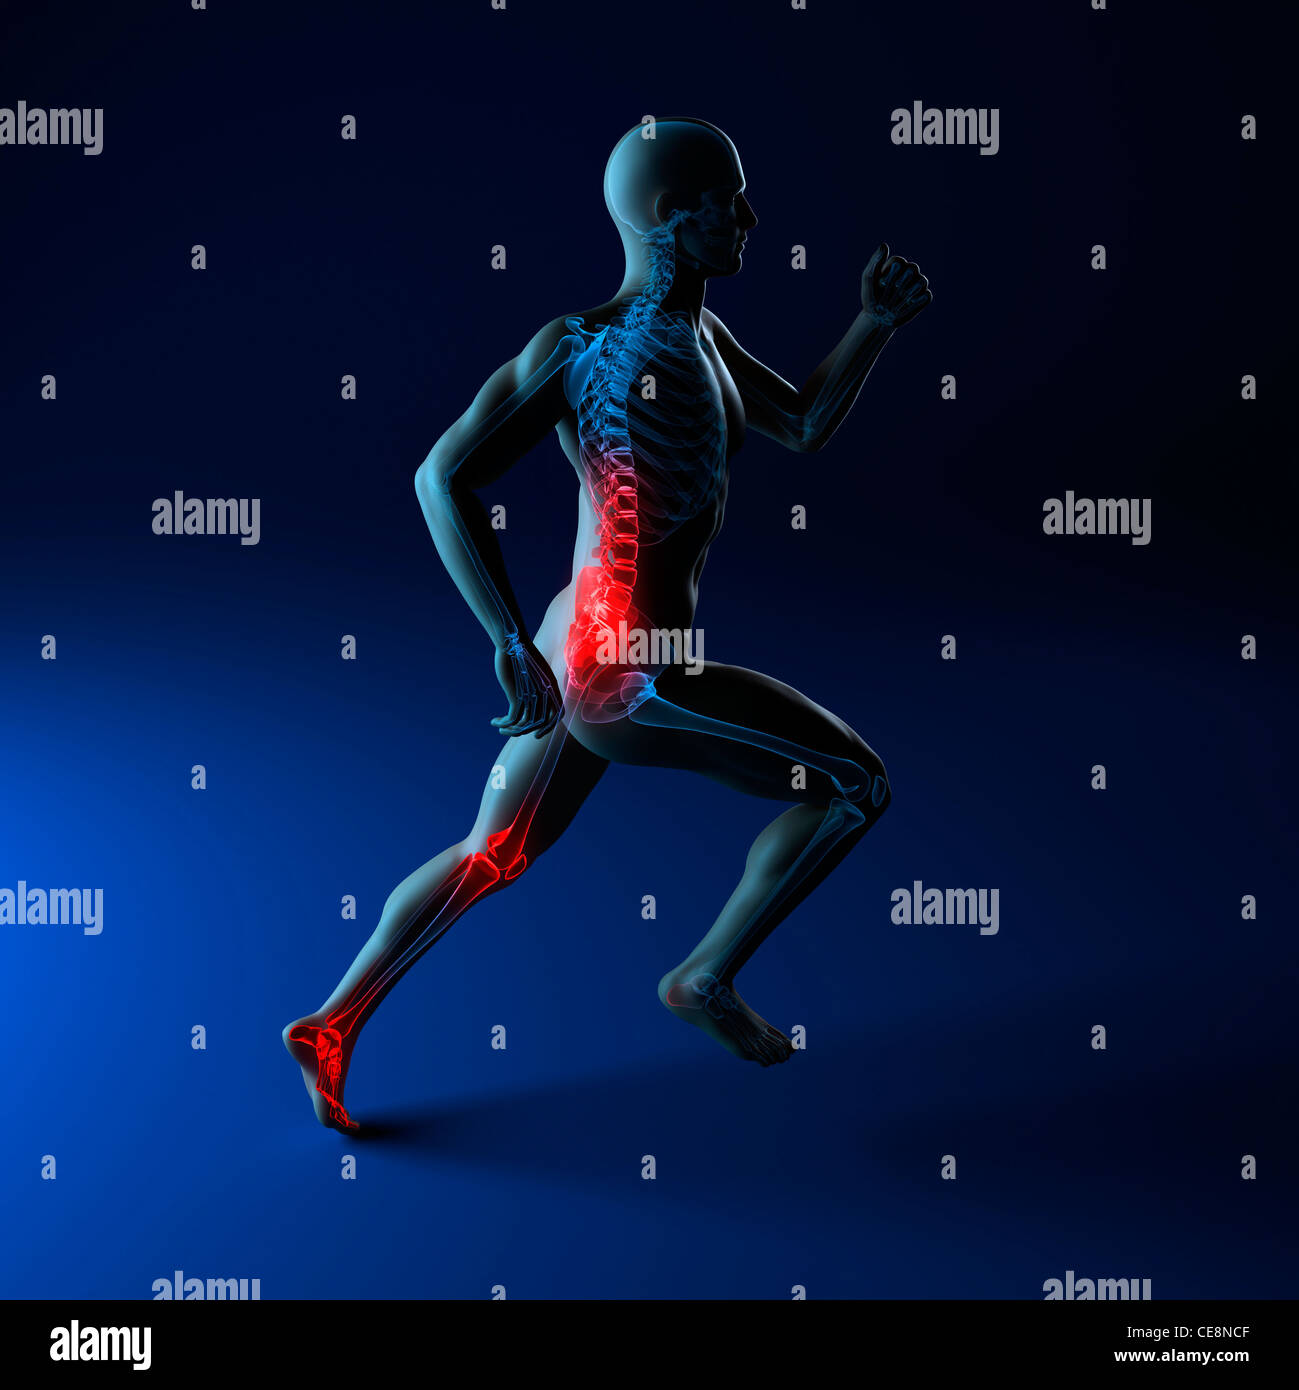 Running injuries, conceptual computer artwork. - Stock Image